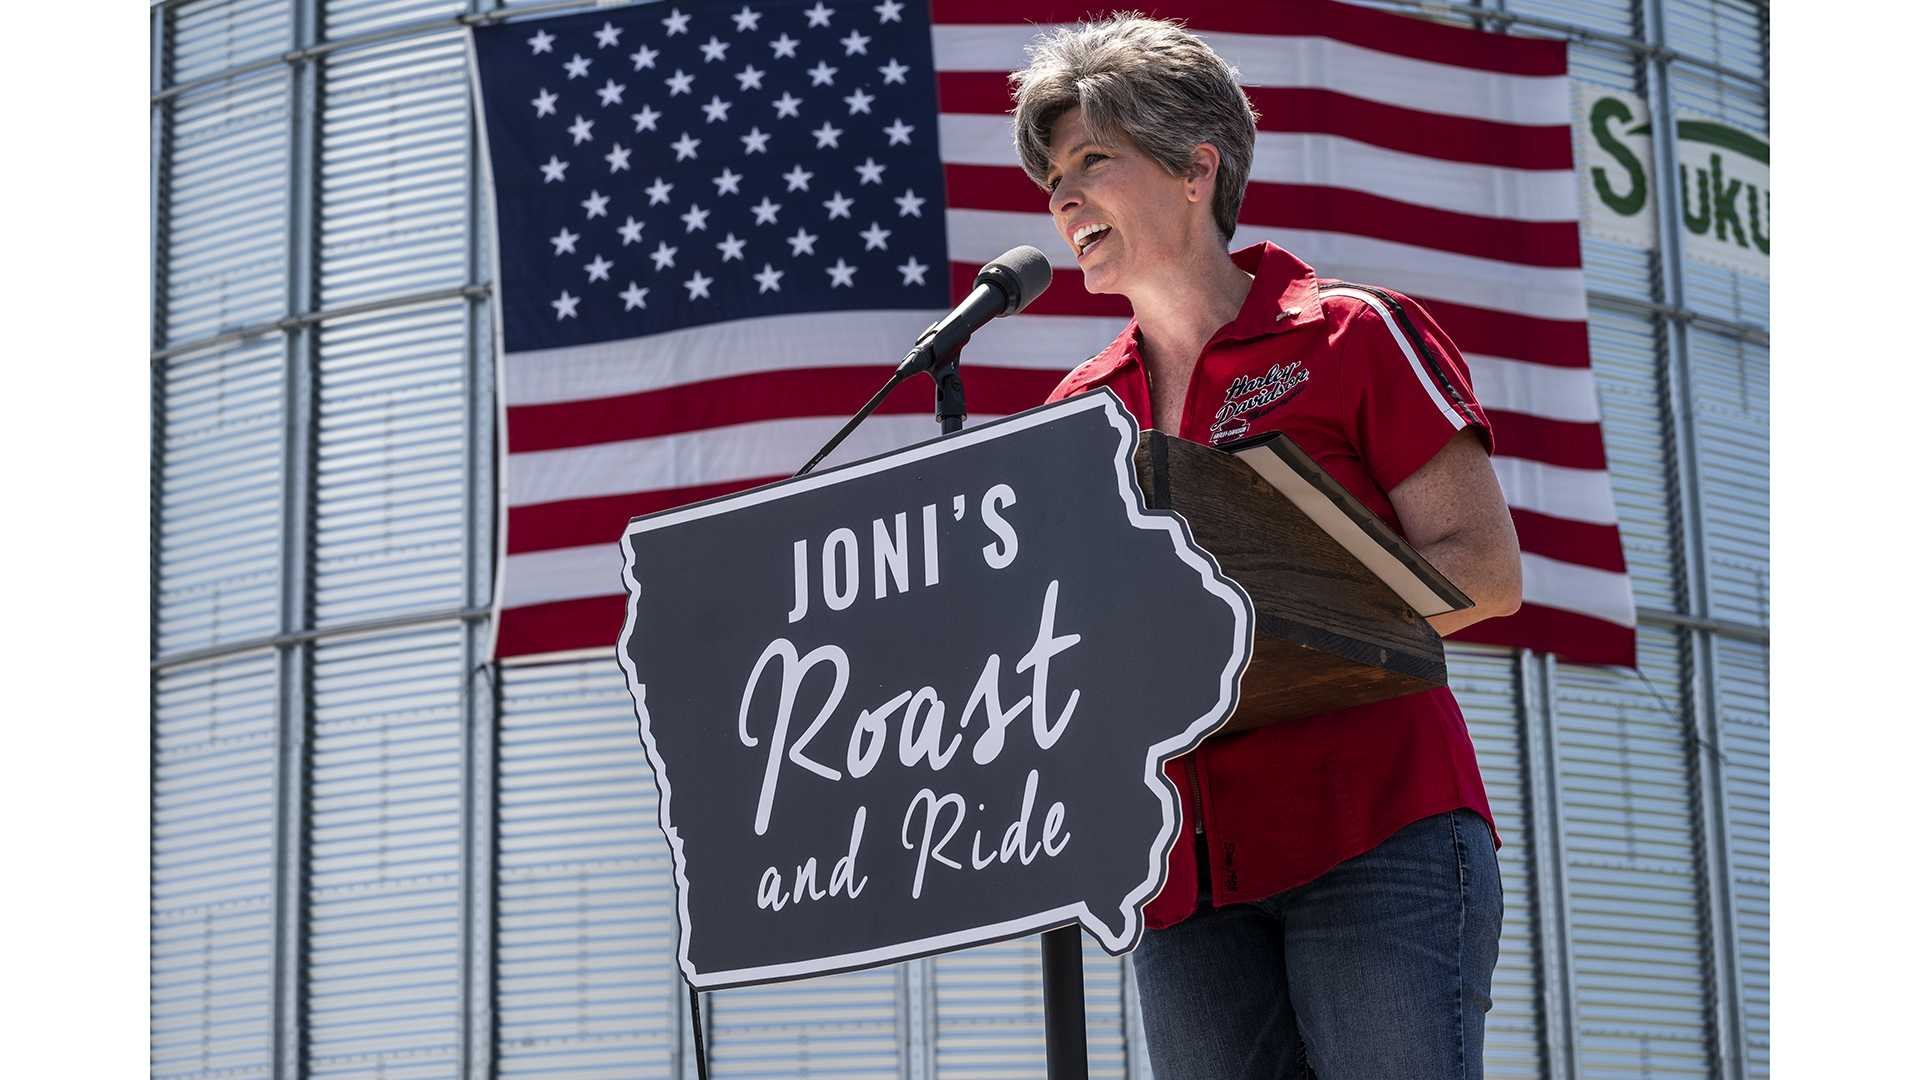 Sen. Joni Ernst, R-Iowa, speaks during the fourth annual Roast and Ride fundraiser in Boone, Iowa on Saturday, June 9, 2018. The event raises money for veterans' charities and provides a platform for state and national Republican officials to speak. (Nick Rohlman/The Daily Iowan)